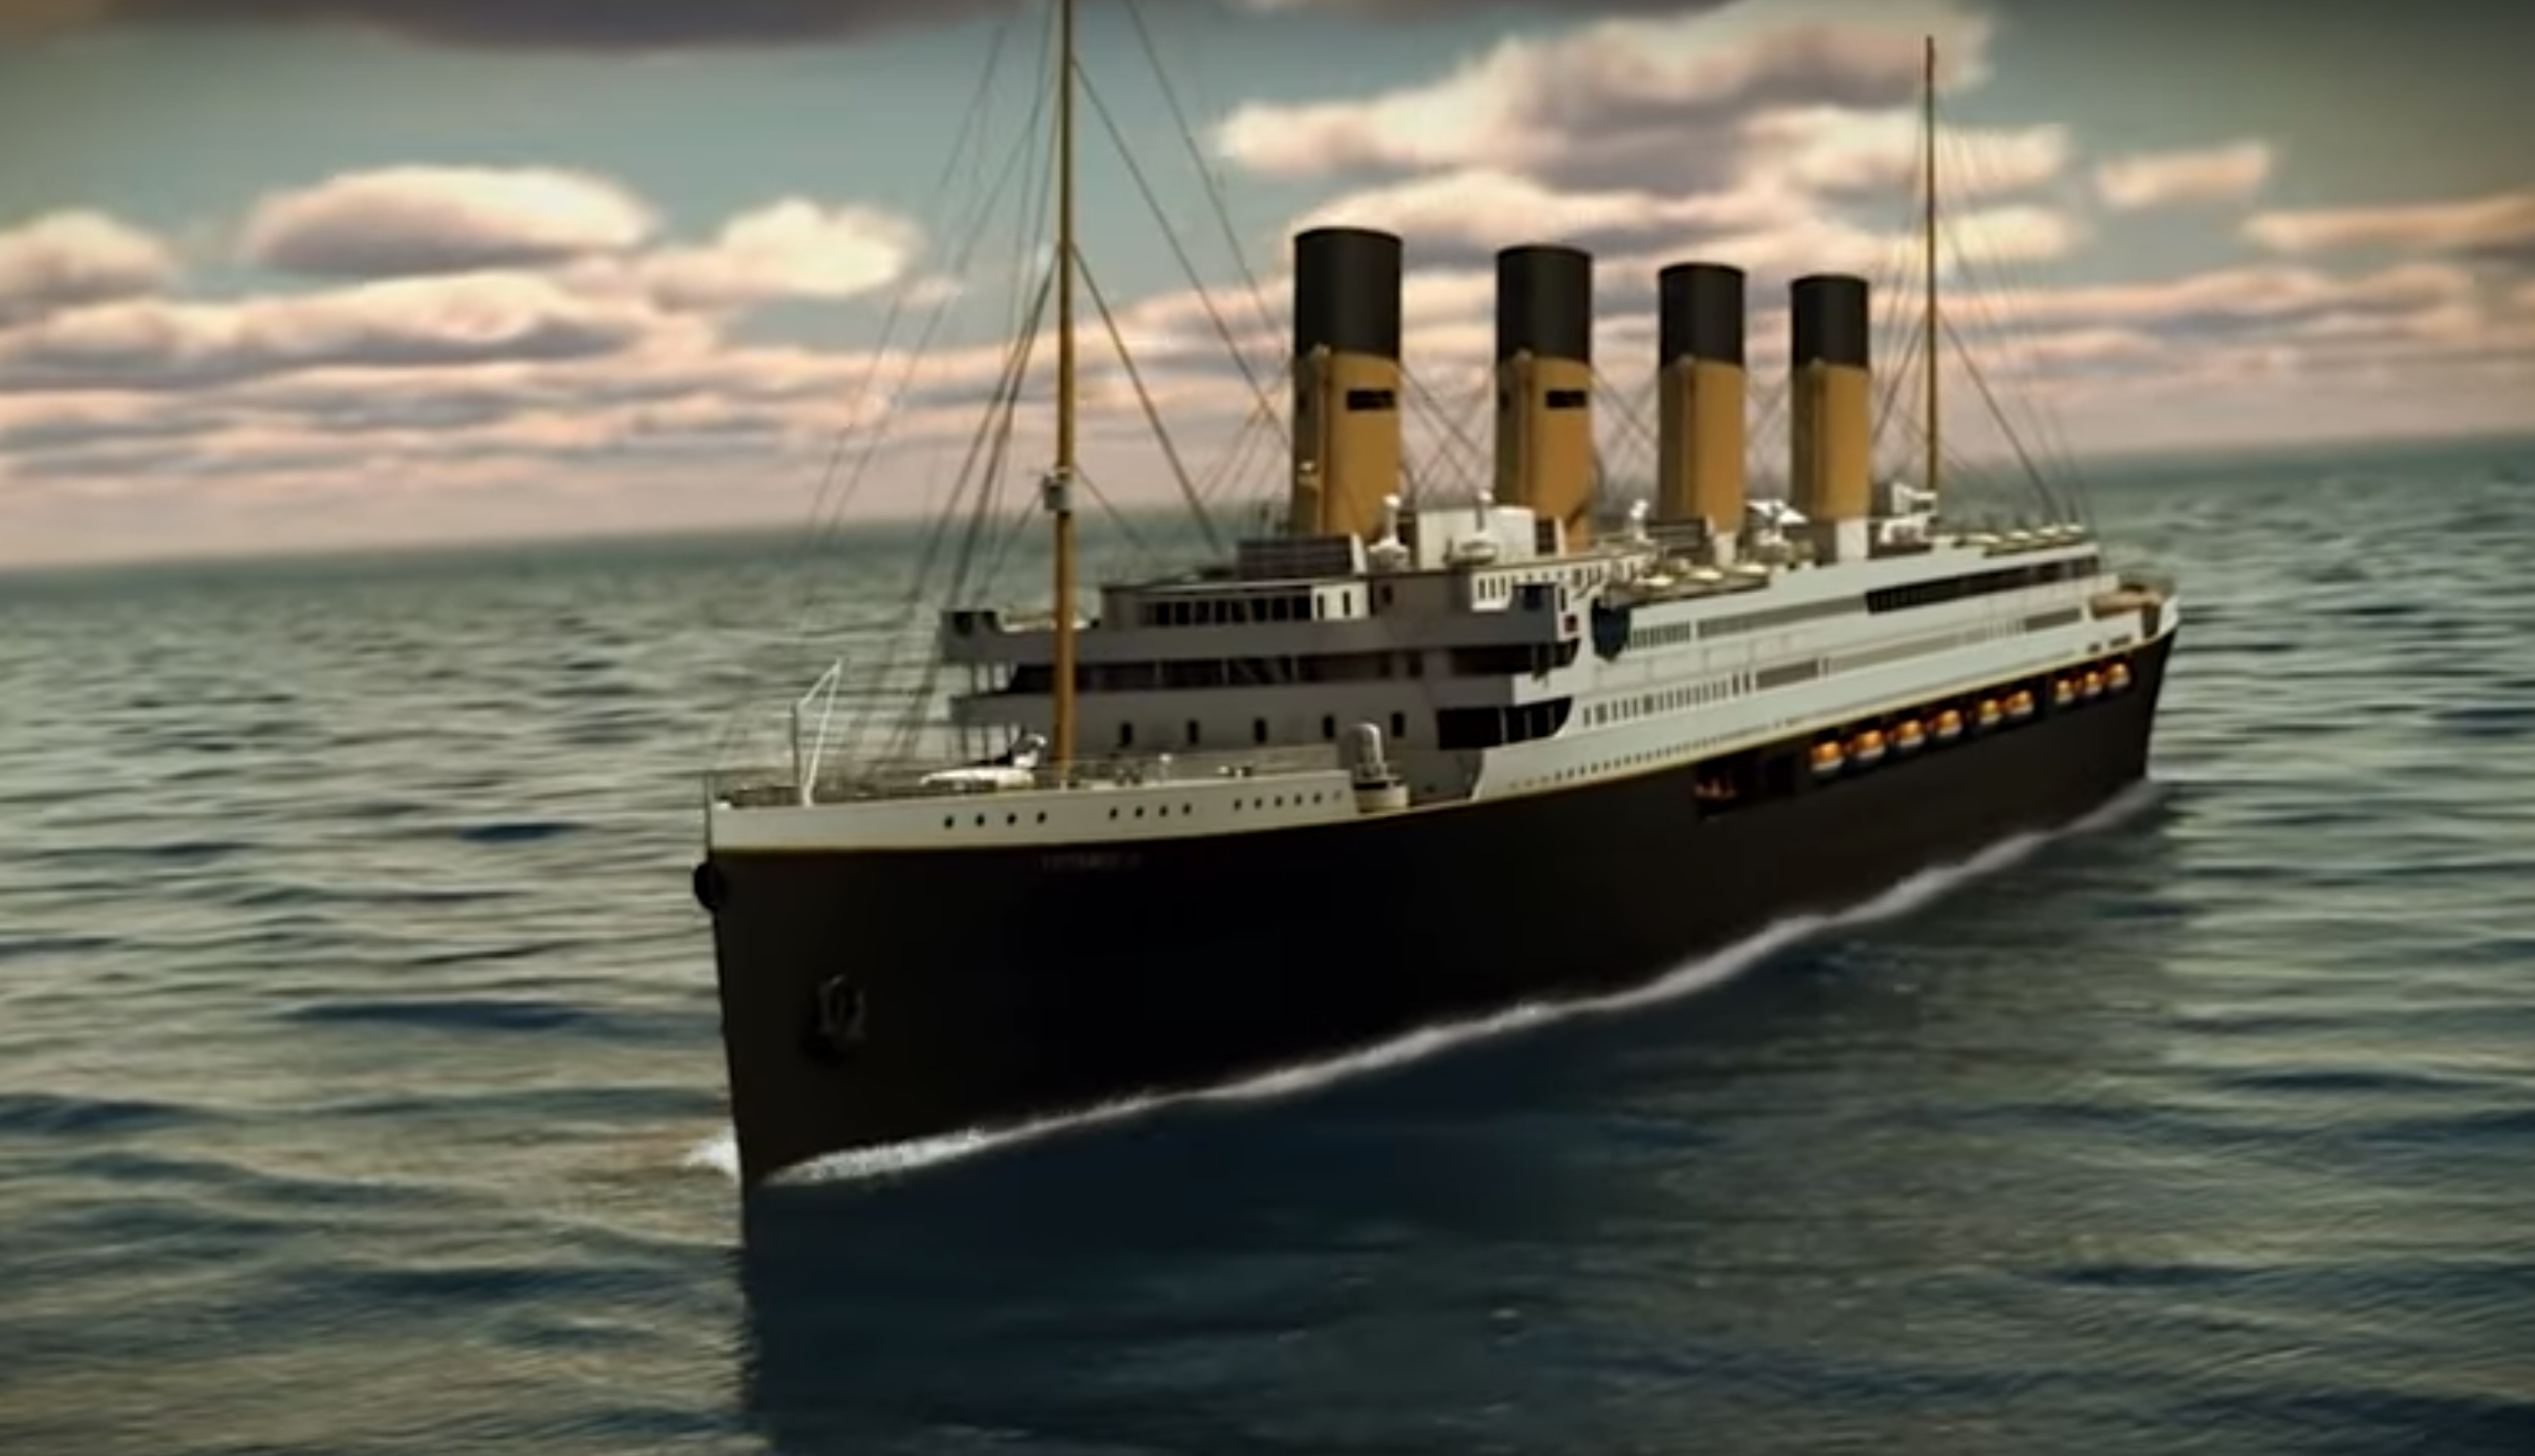 Titanic Ii Could Set Sail By 2022 Following Original Route Cbs News